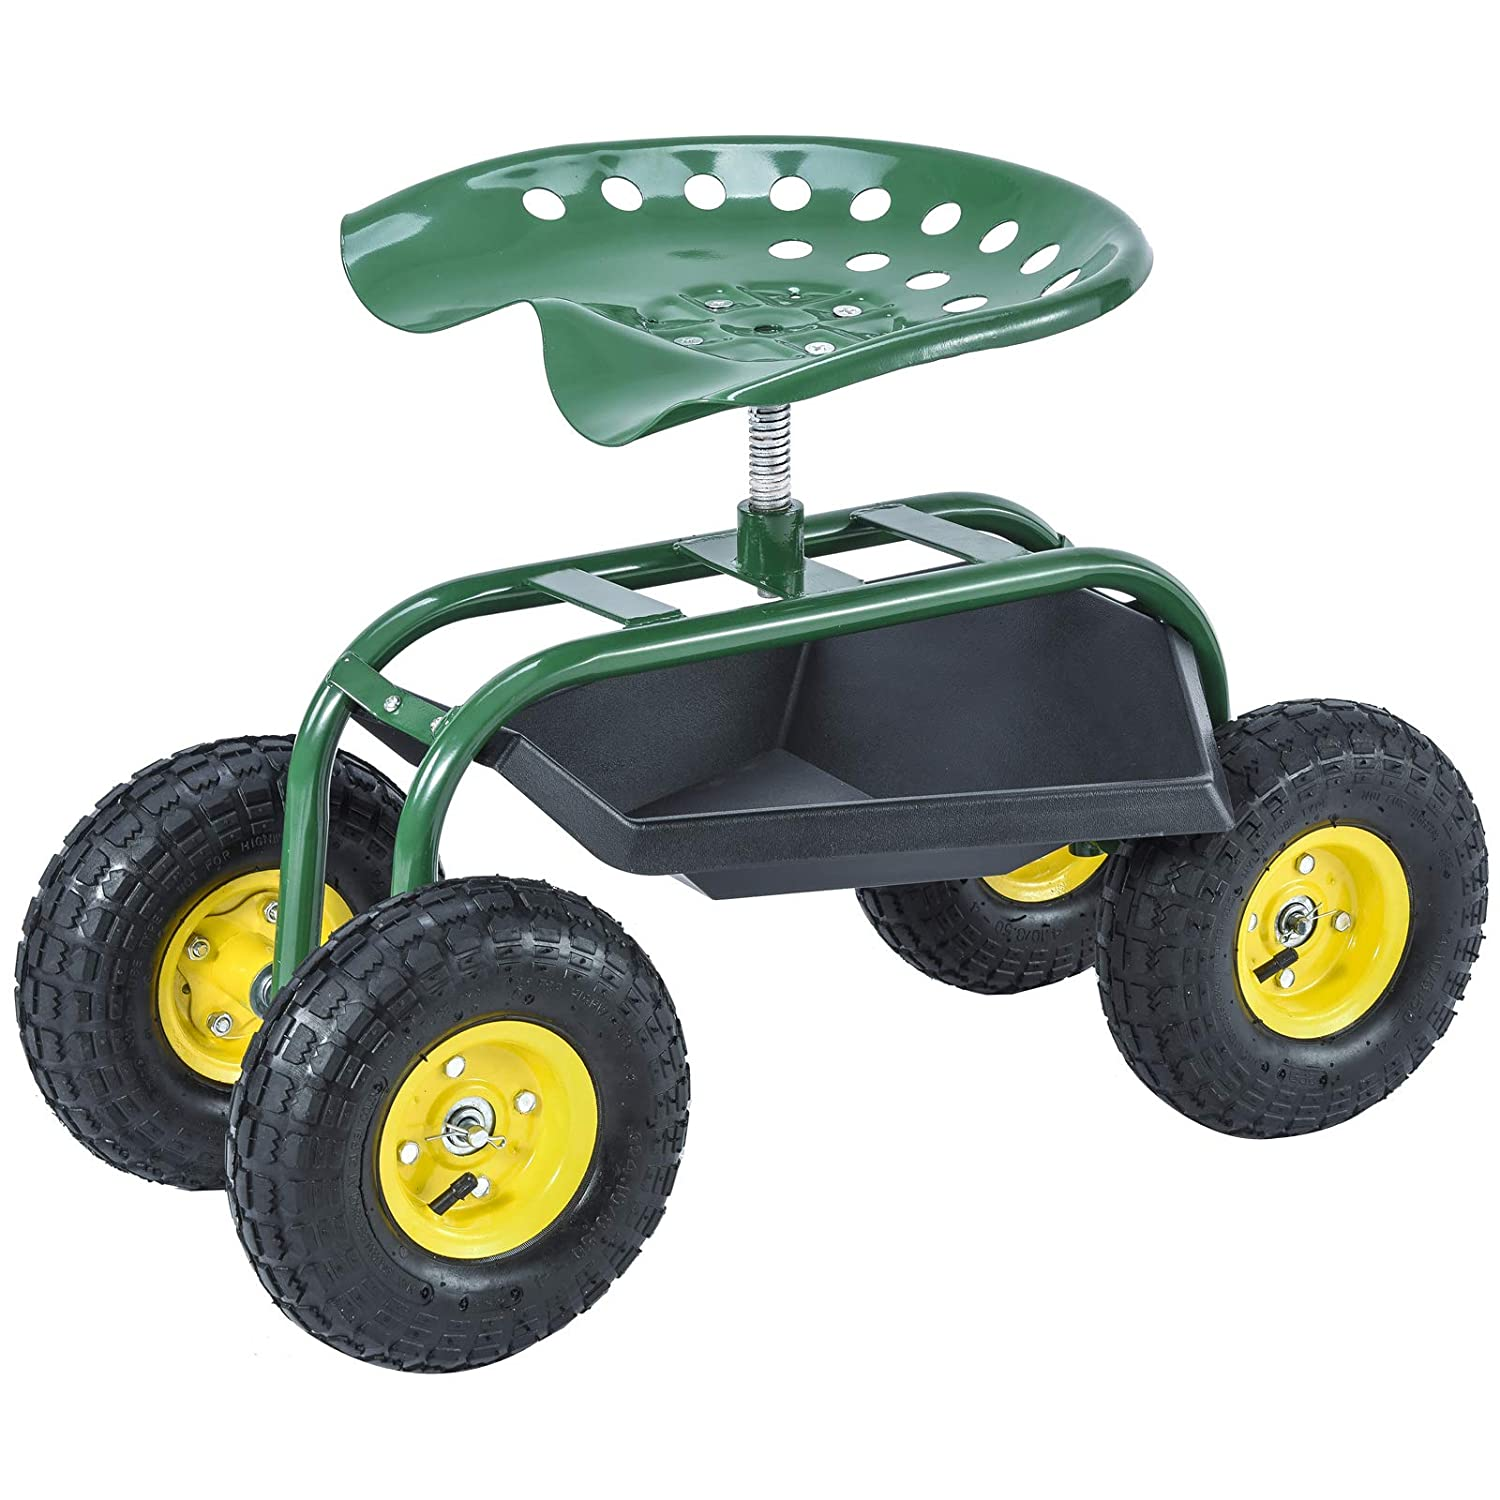 SUNCOO Garden Rolling Seat Scooter Tray Wagon for Gardening, Weeding and Lawn Care, Heavy-Duty with 10 Wheel Green